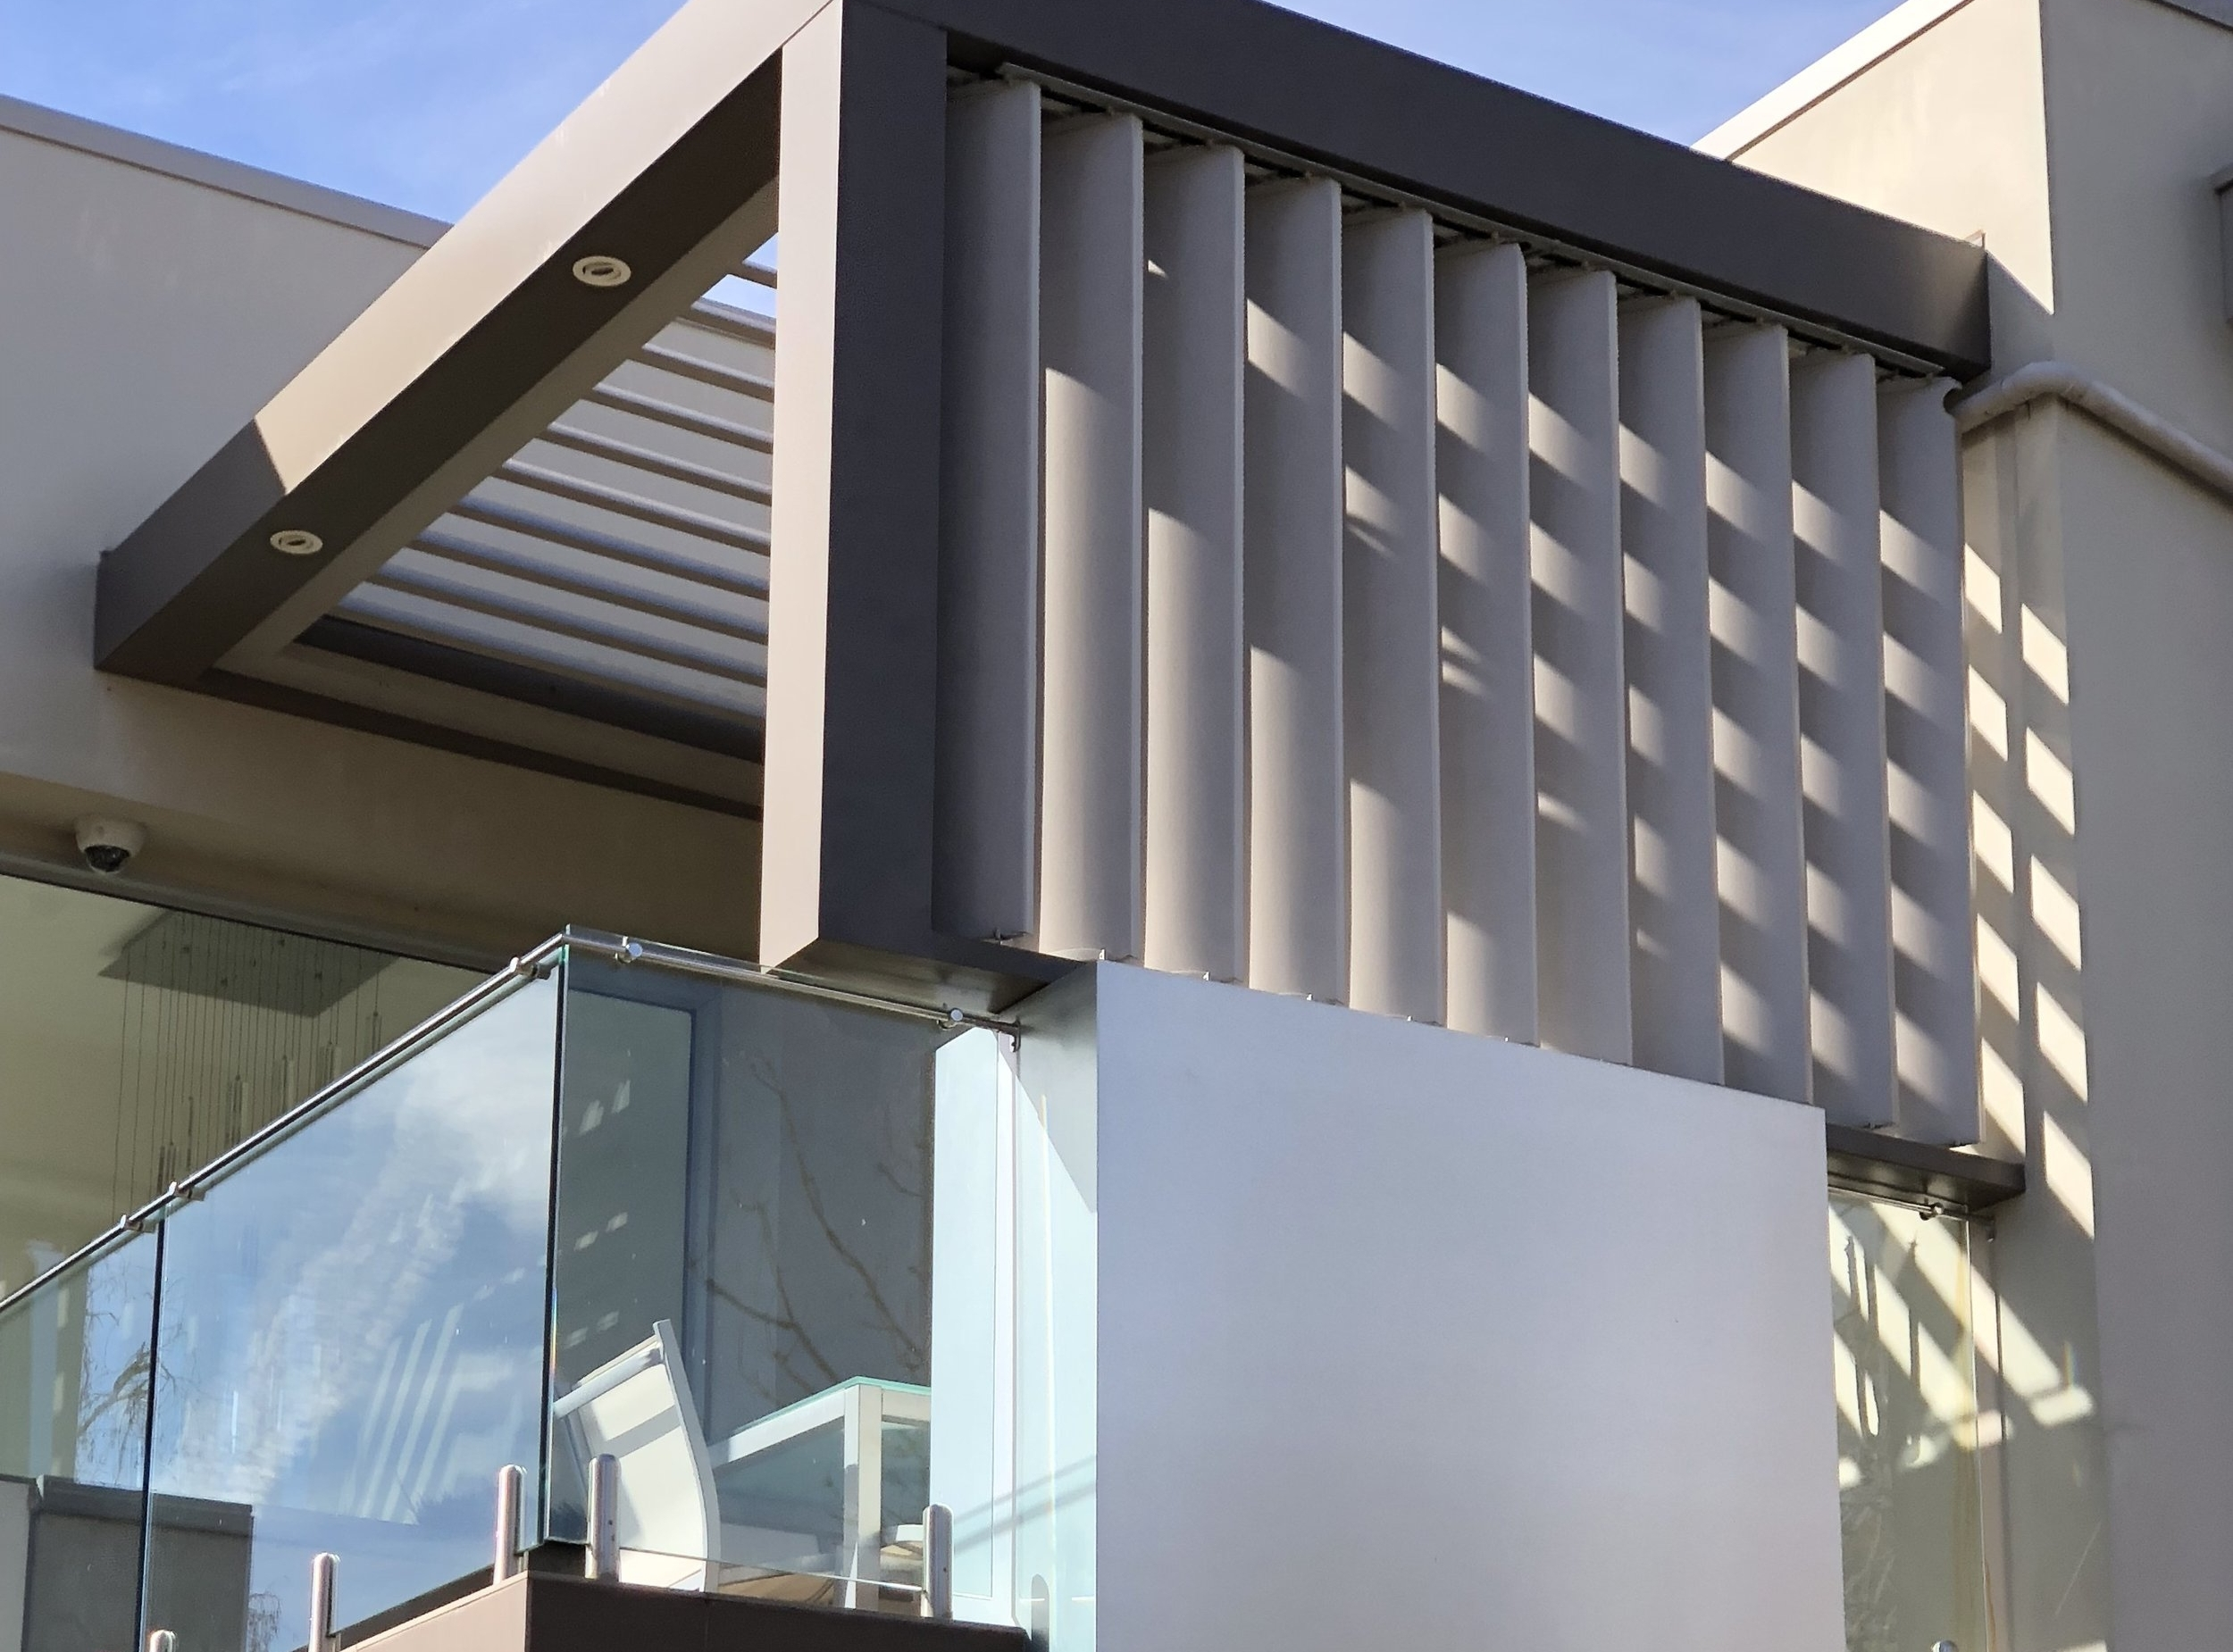 Screens - A vertical Vergola® or screen can be the perfect solution to provide privacy to your outdoor area as well as being the perfect complement to your Vergola® roof